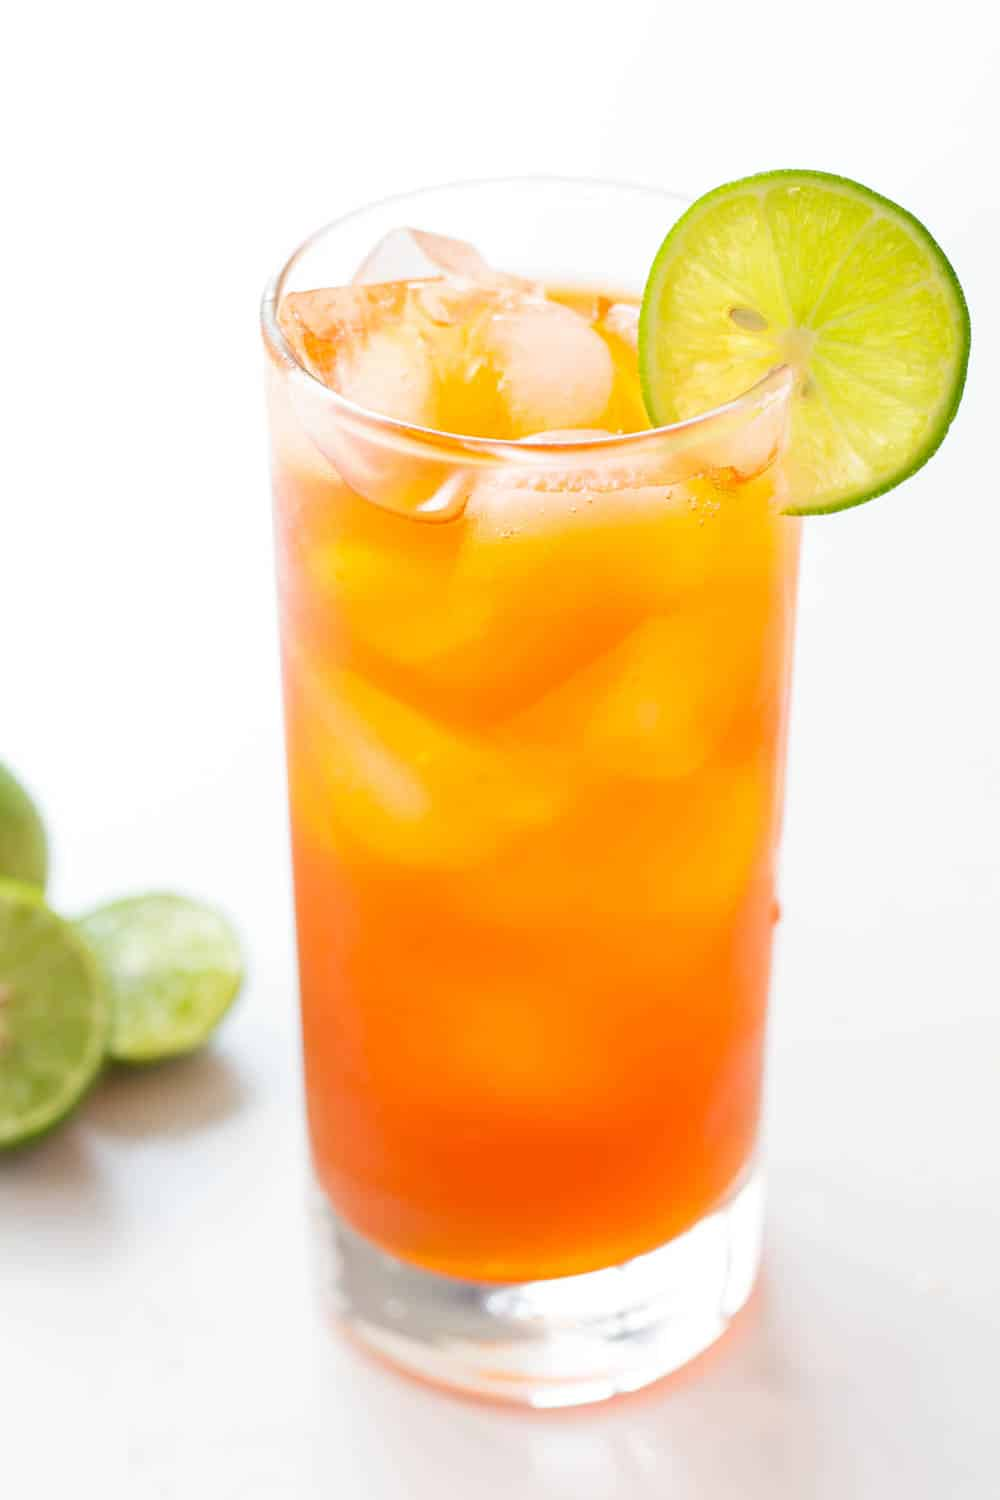 This refreshing Thai Lemon Iced Tea is naturally sweetened with honey. It is perfect to serve on hot summer days or with homemade Thai food.